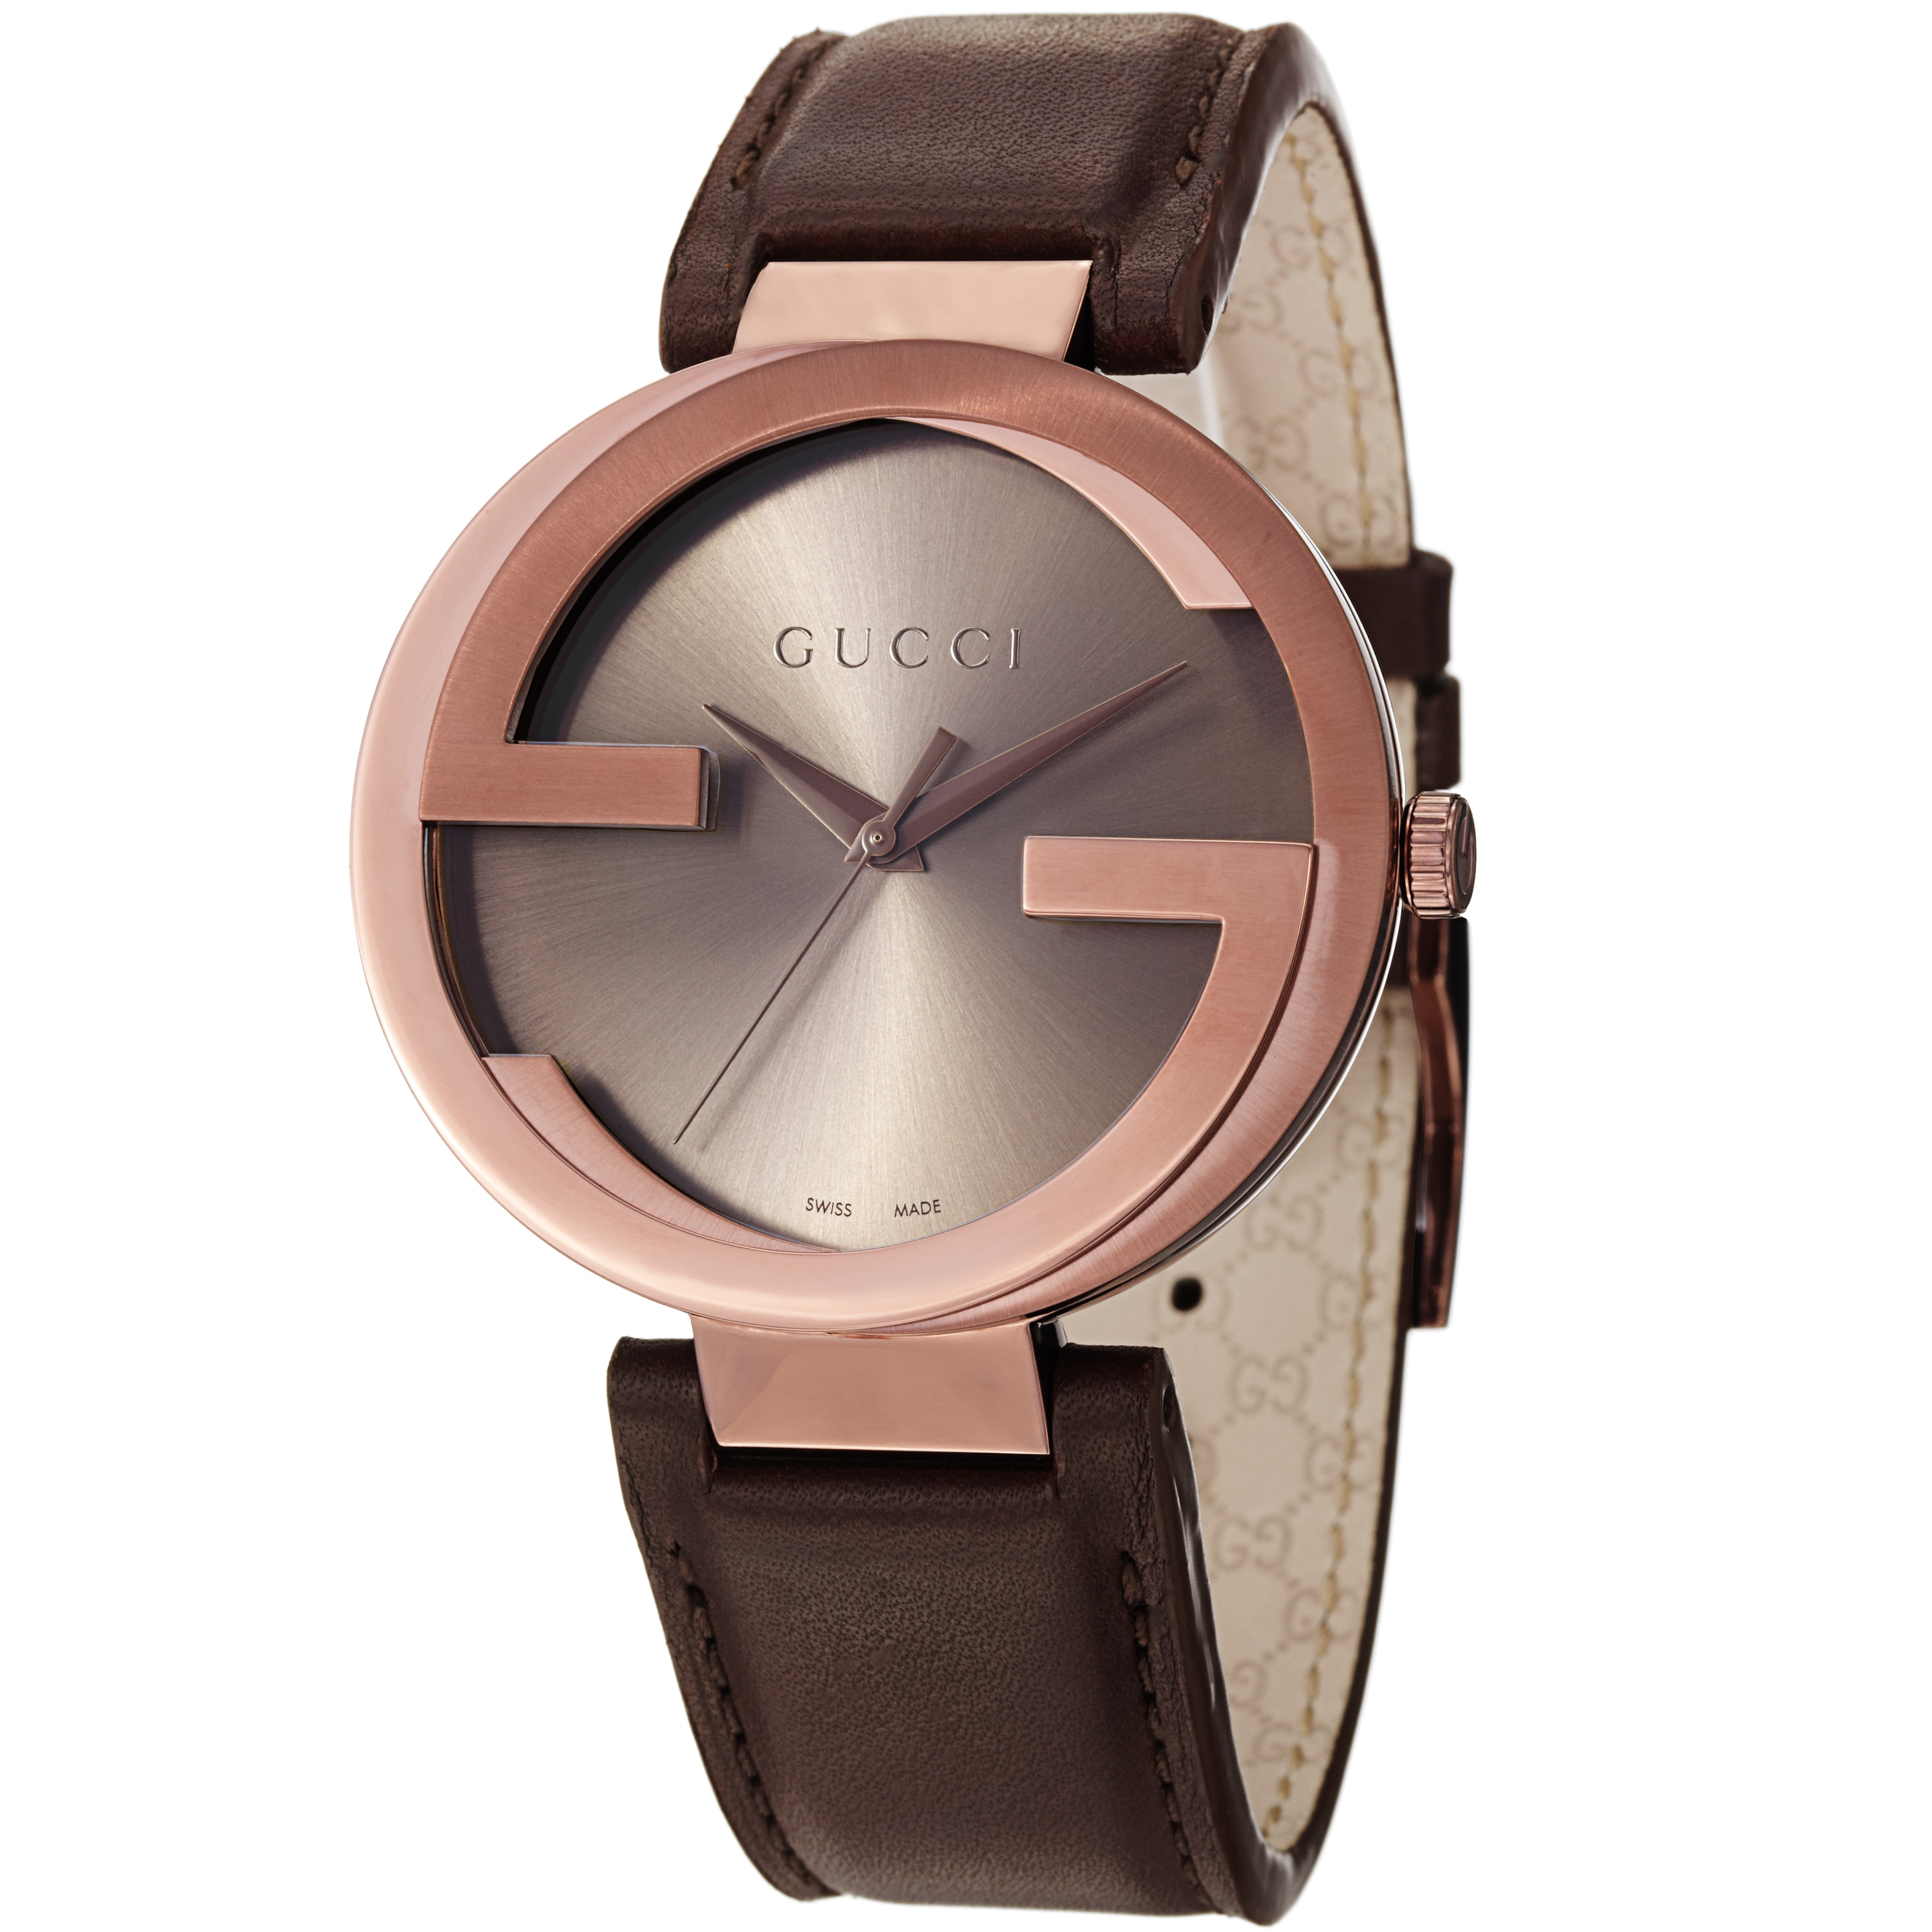 629d1e155d8 Shop Gucci Men s YA133207  Interlocking  Brown Dial Brown Leather Strap  Quartz Watch - Free Shipping Today - Overstock - 9165485